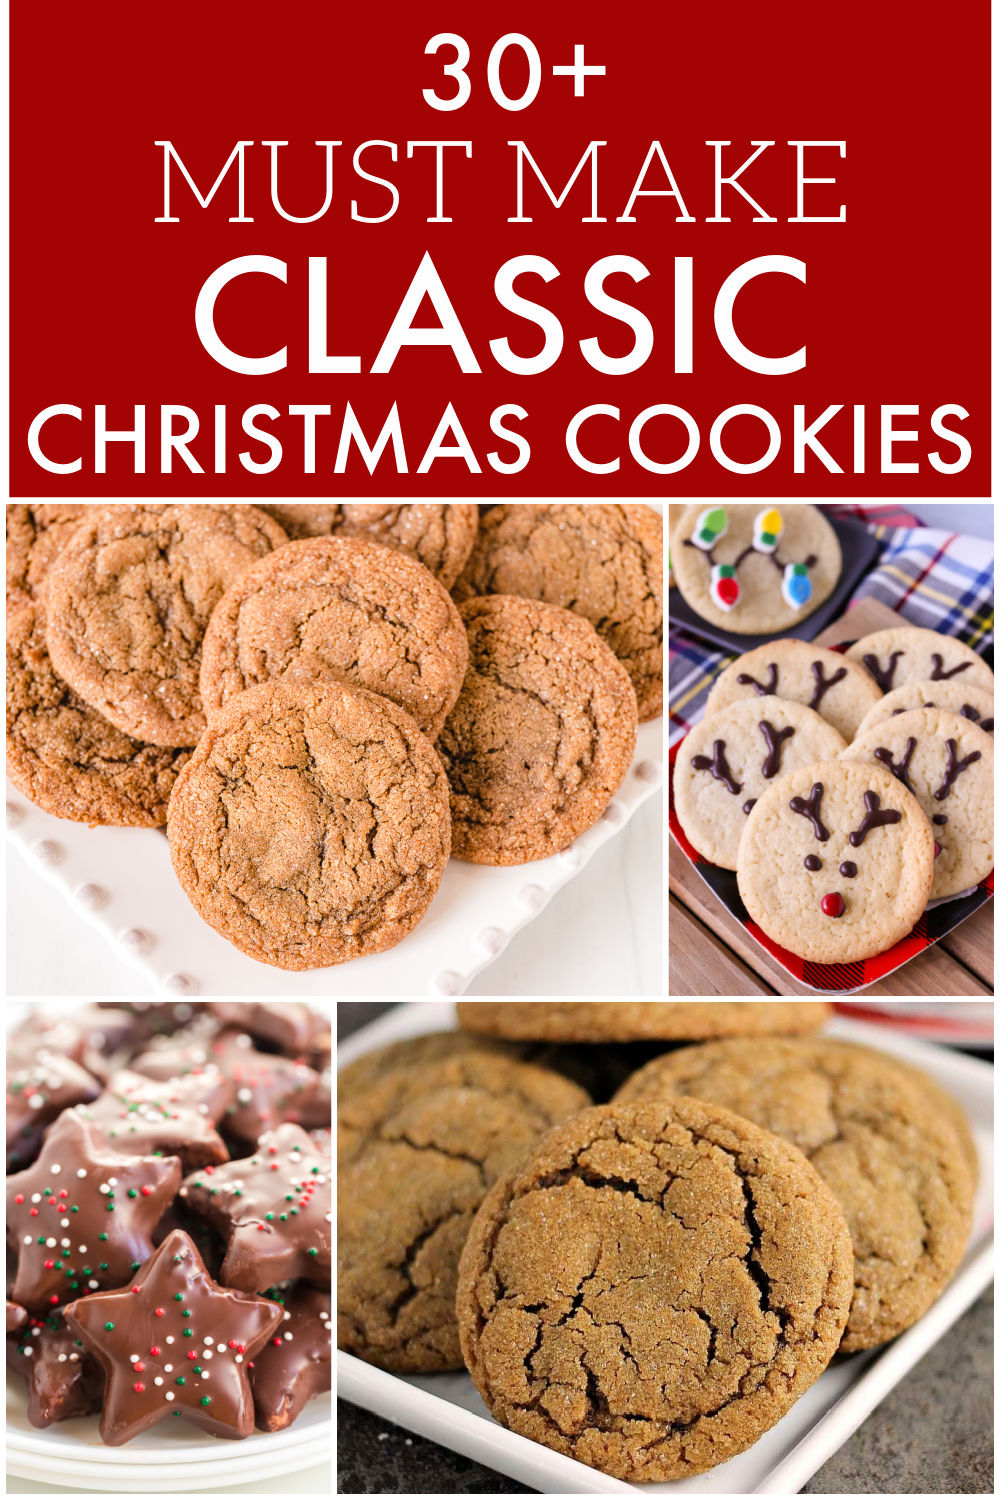 Cookie season is upon us and this collection of classic Christmas cookies will help you spread holiday cheer! From ginger snaps to frosted sugar cookies, I have over 30 classic cookie recipes to fill your Christmas cookie trays. | www.persnicketyplates.com